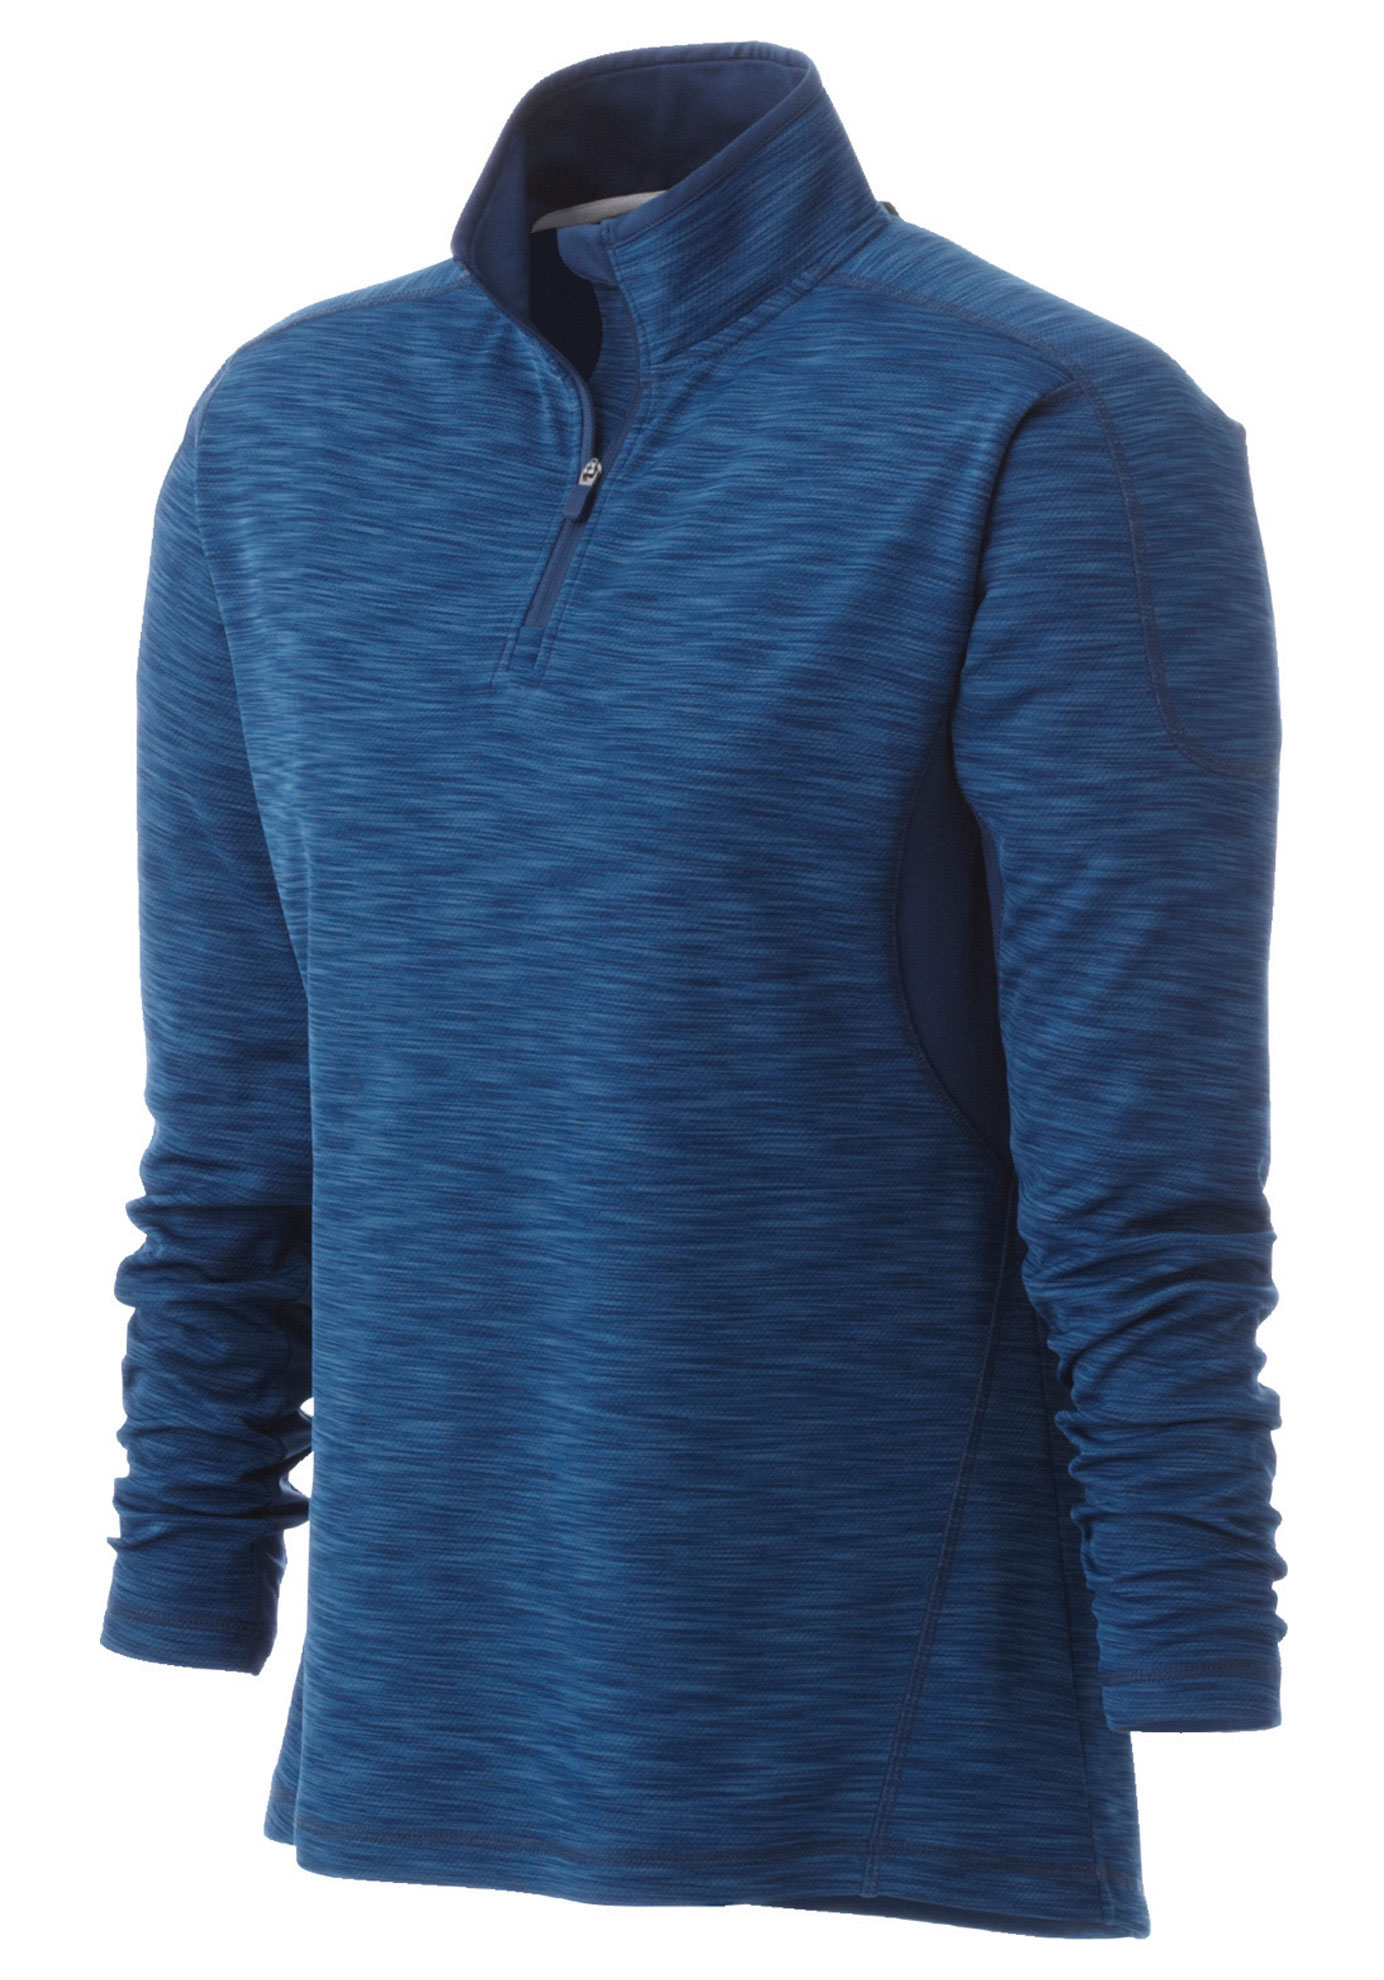 Womens Yerba Knit Quarter Zip Pullover